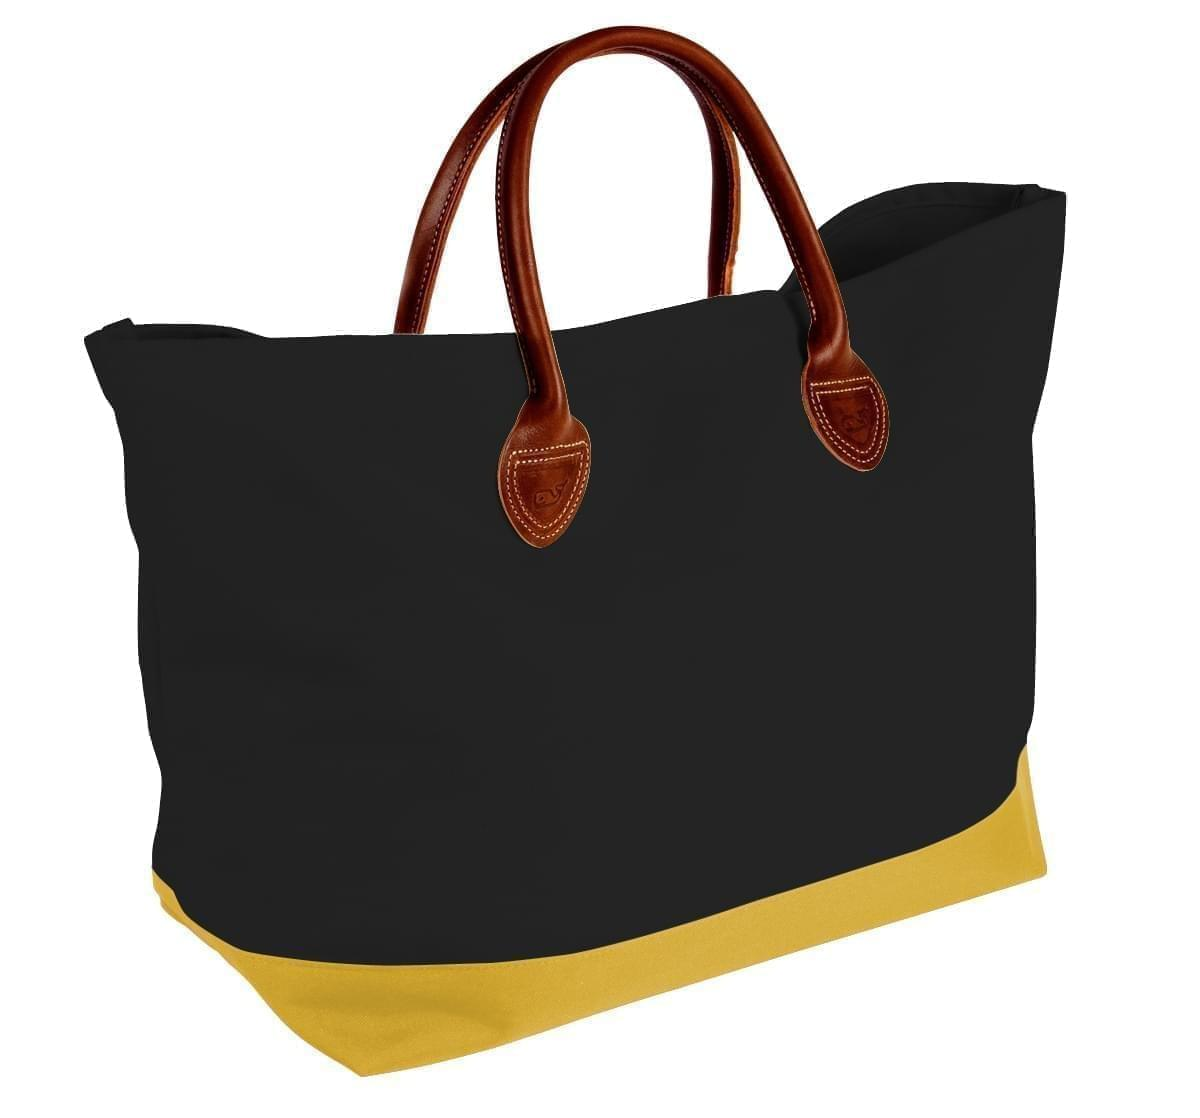 USA Made Canvas Leather Handle Totes, Black-Gold, 10899-QH9